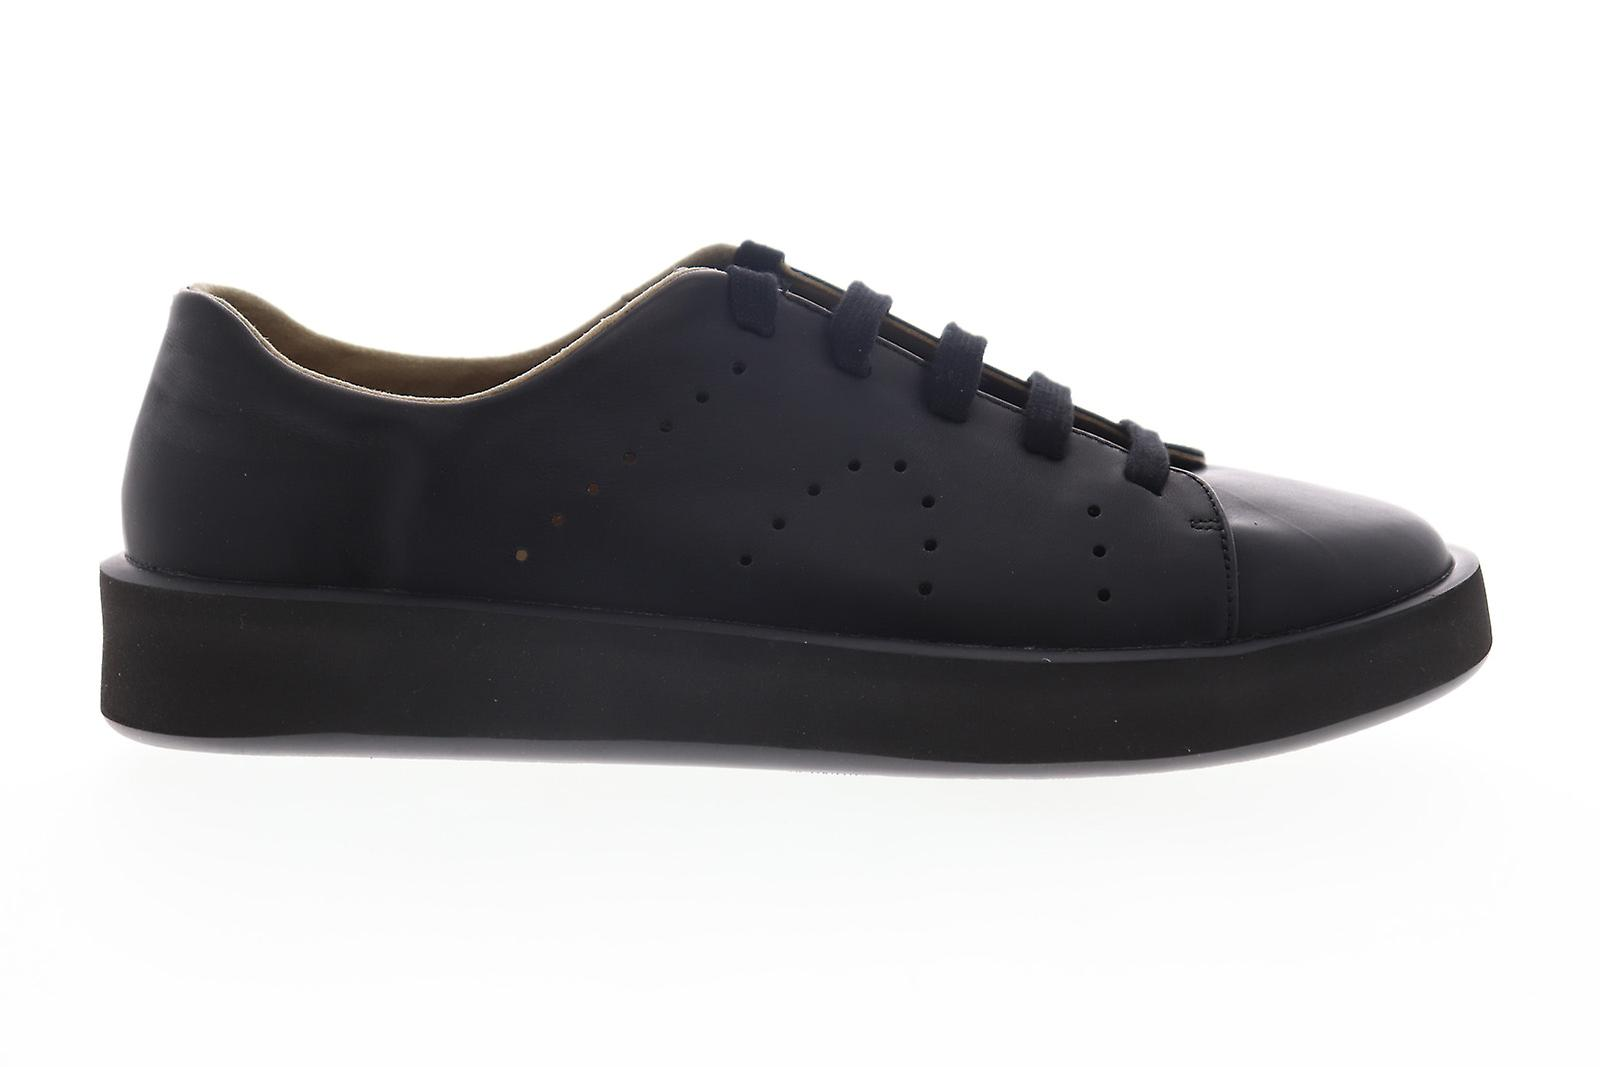 Camper Courb Hommess Black Leather Lace Up Low Top Sneakers Chaussures